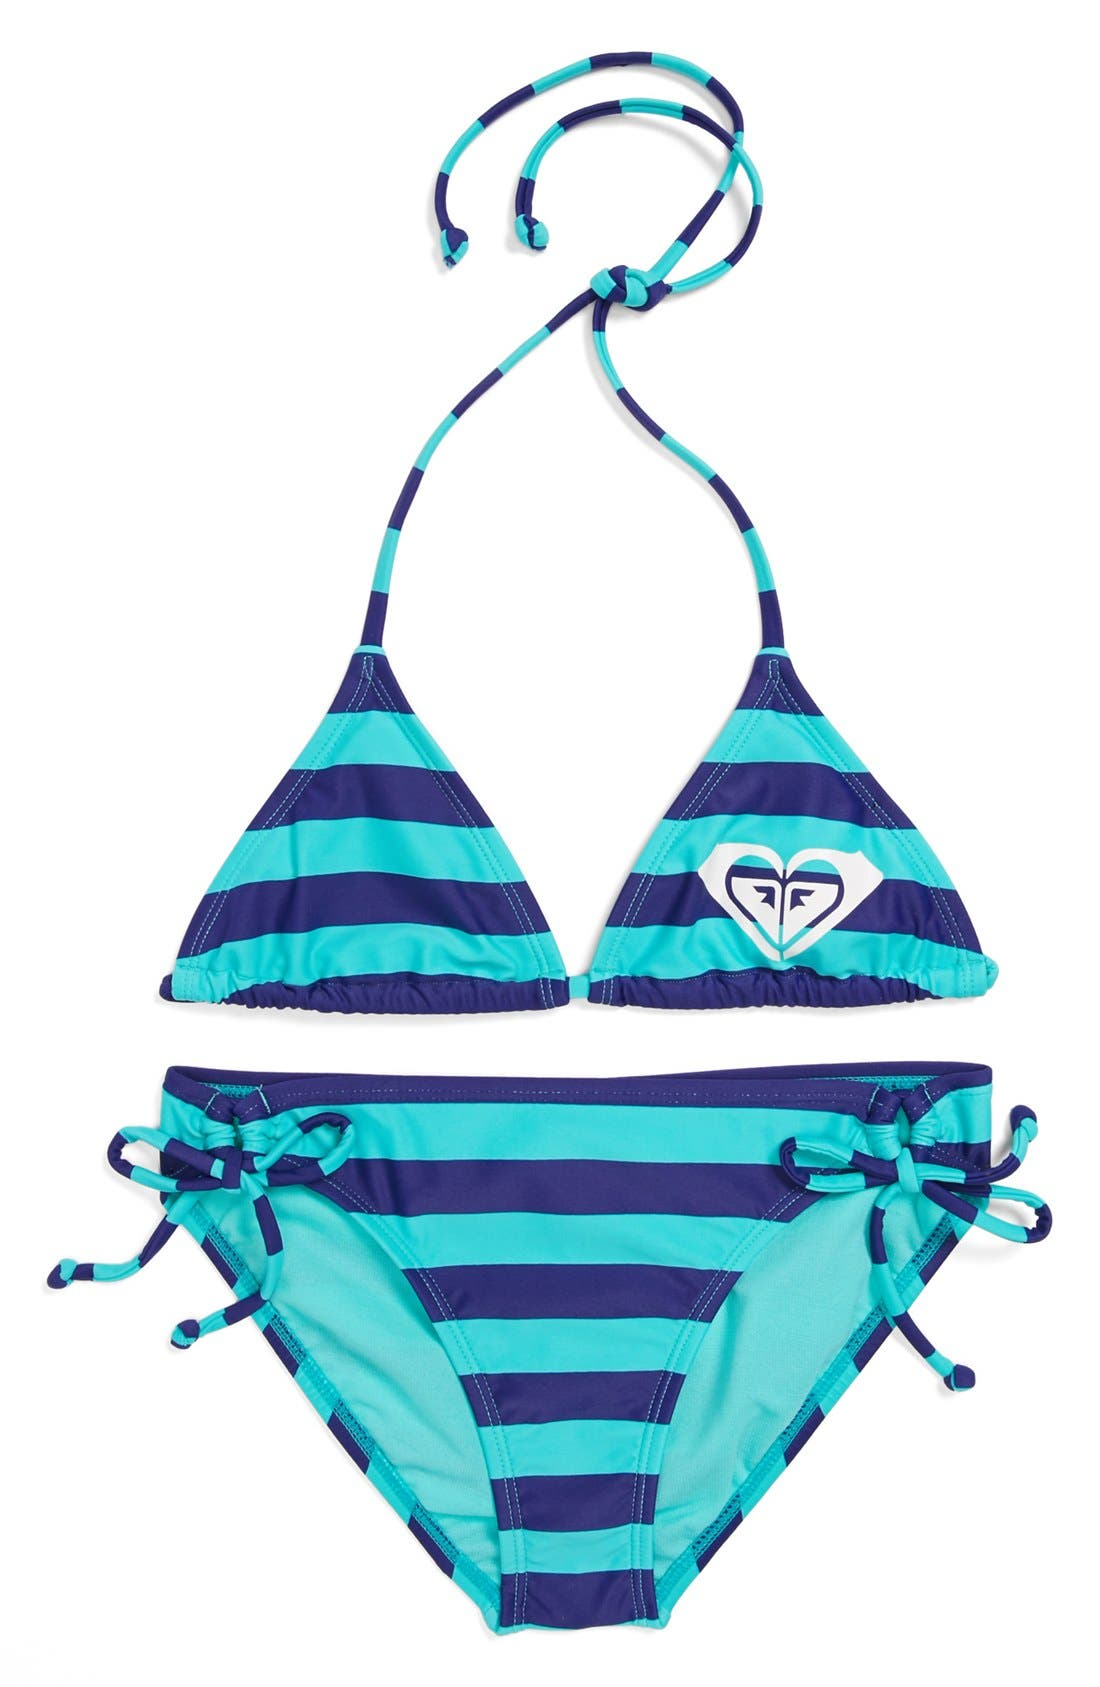 Alternate Image 1 Selected - Roxy Two-Piece Swimsuit (Big Girls)(Online Only)